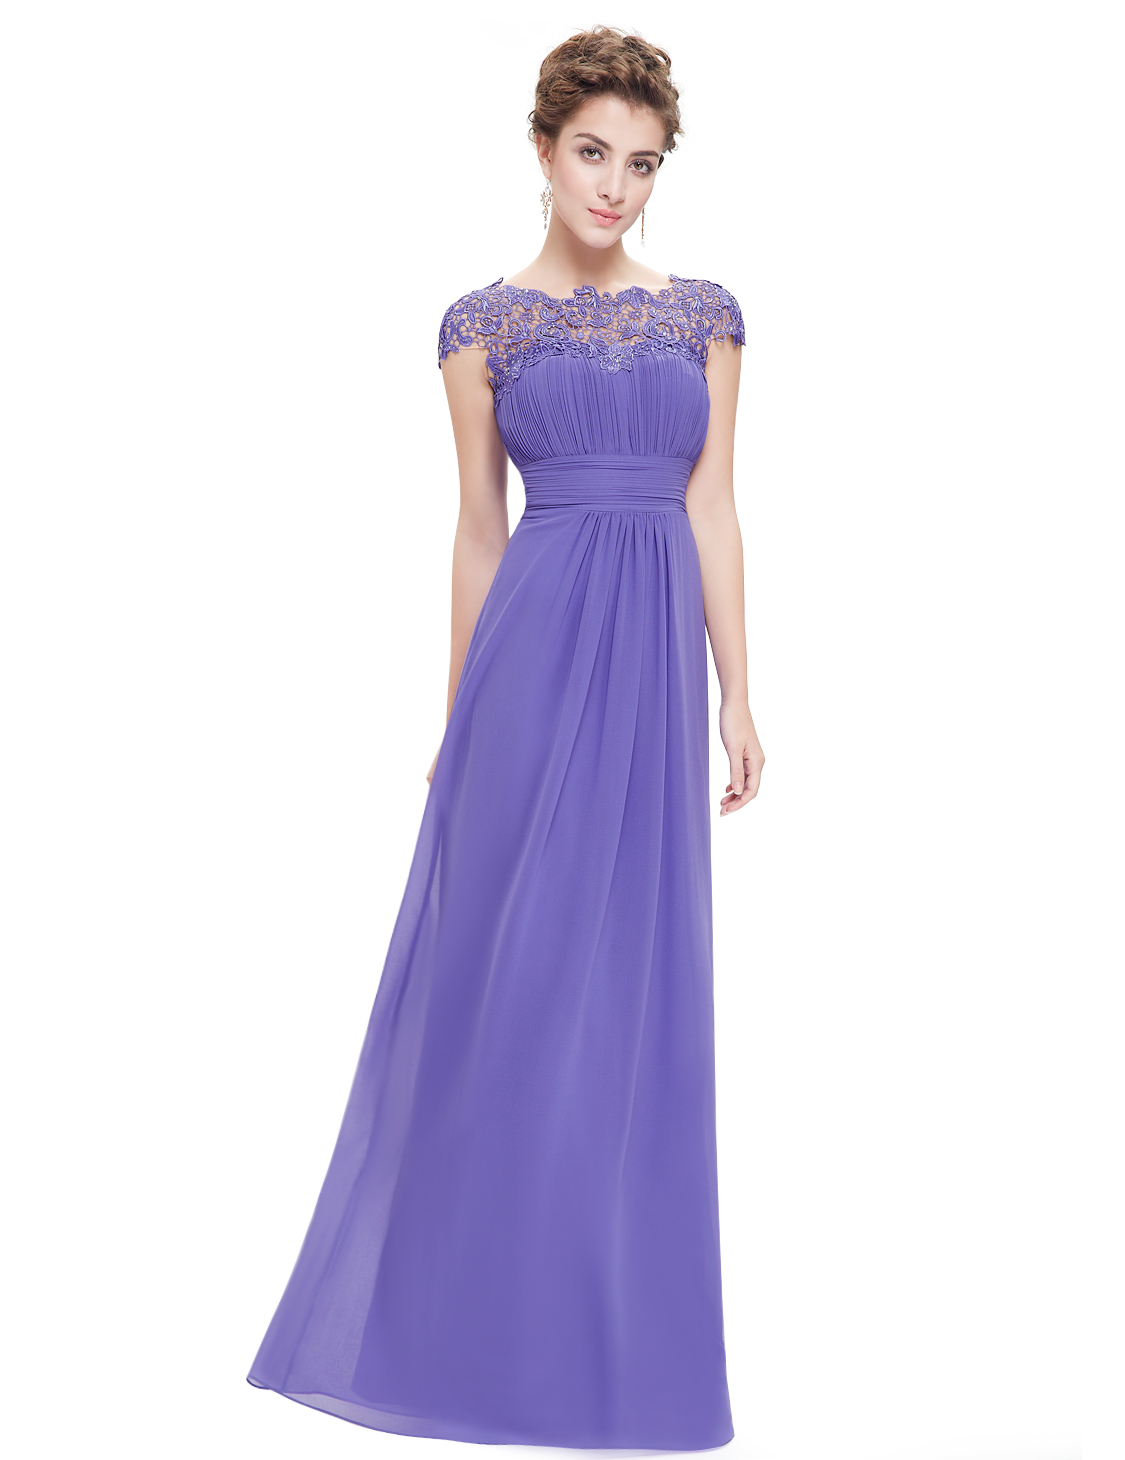 Maxi lace cap sleeve bridesmaid dresses chiffon formal for Lace maxi wedding dress